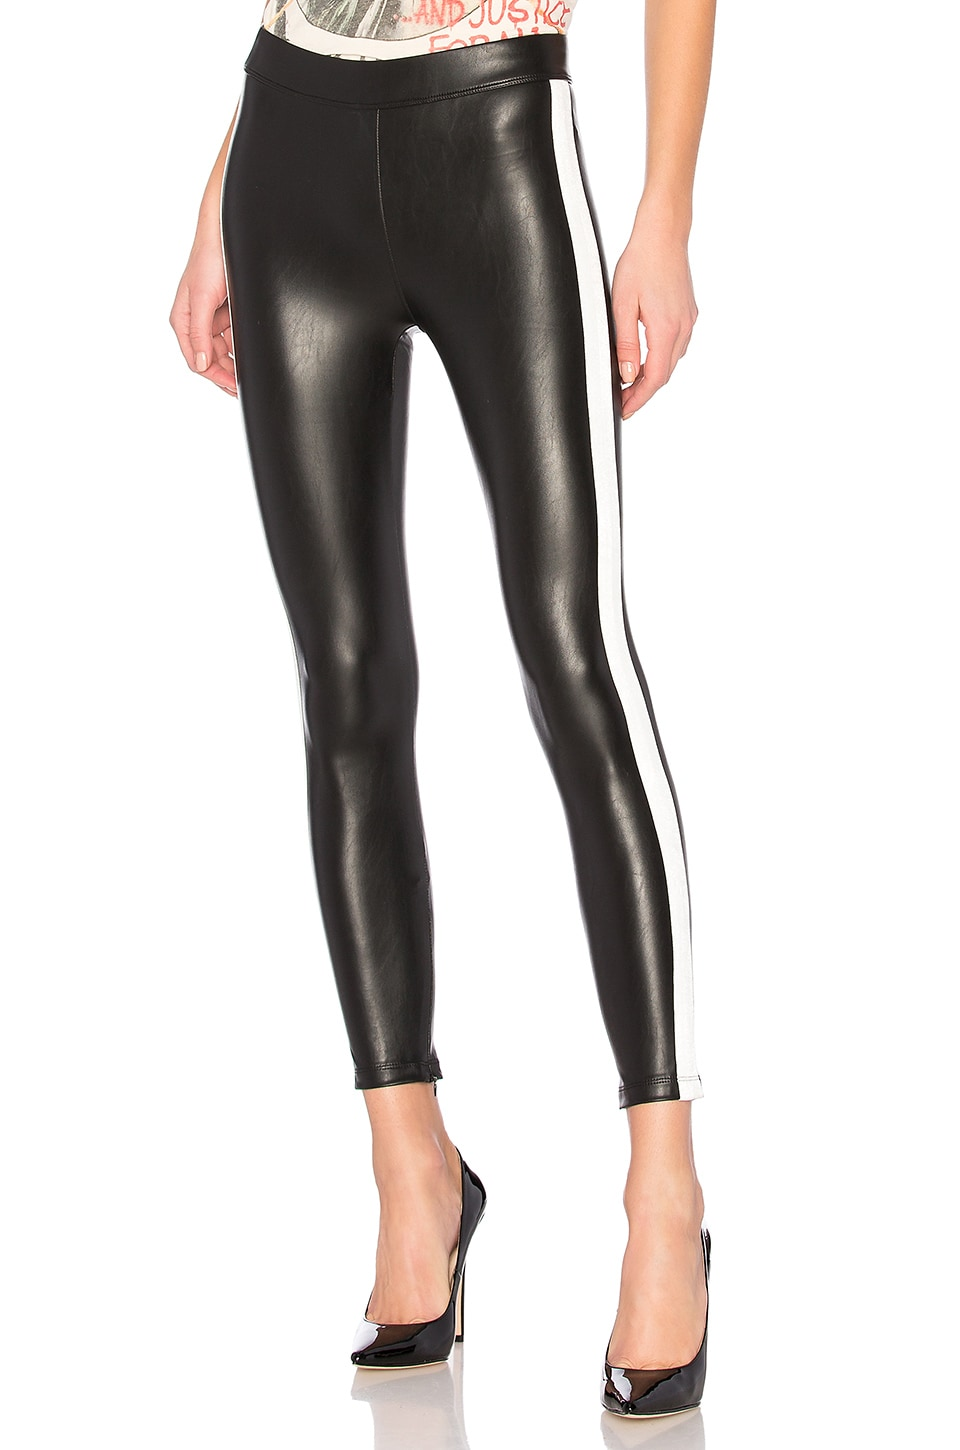 David Lerner Tuxedo Legging in Classic Black